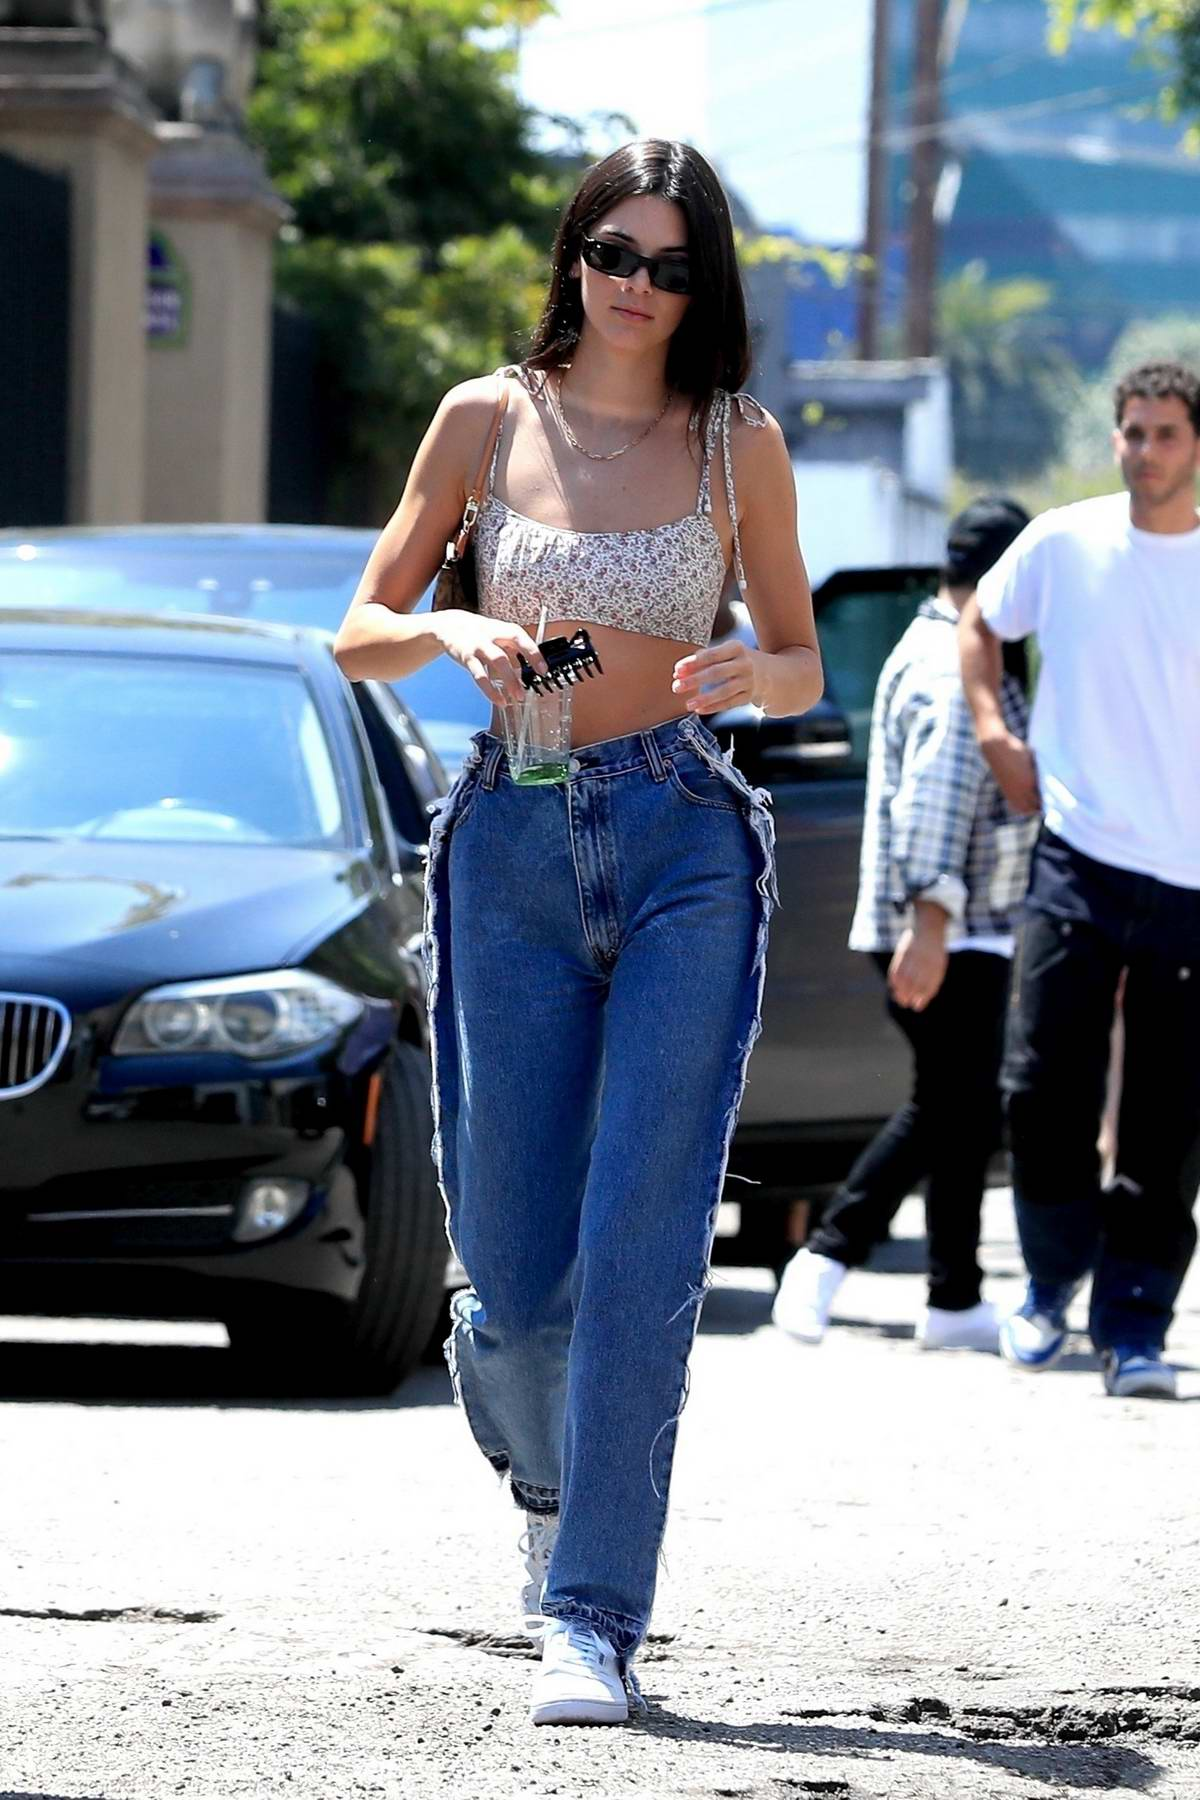 Kendall Jenner looks flawless in tiny crop top and jeans while out with friends in West Hollywood, Los Angeles